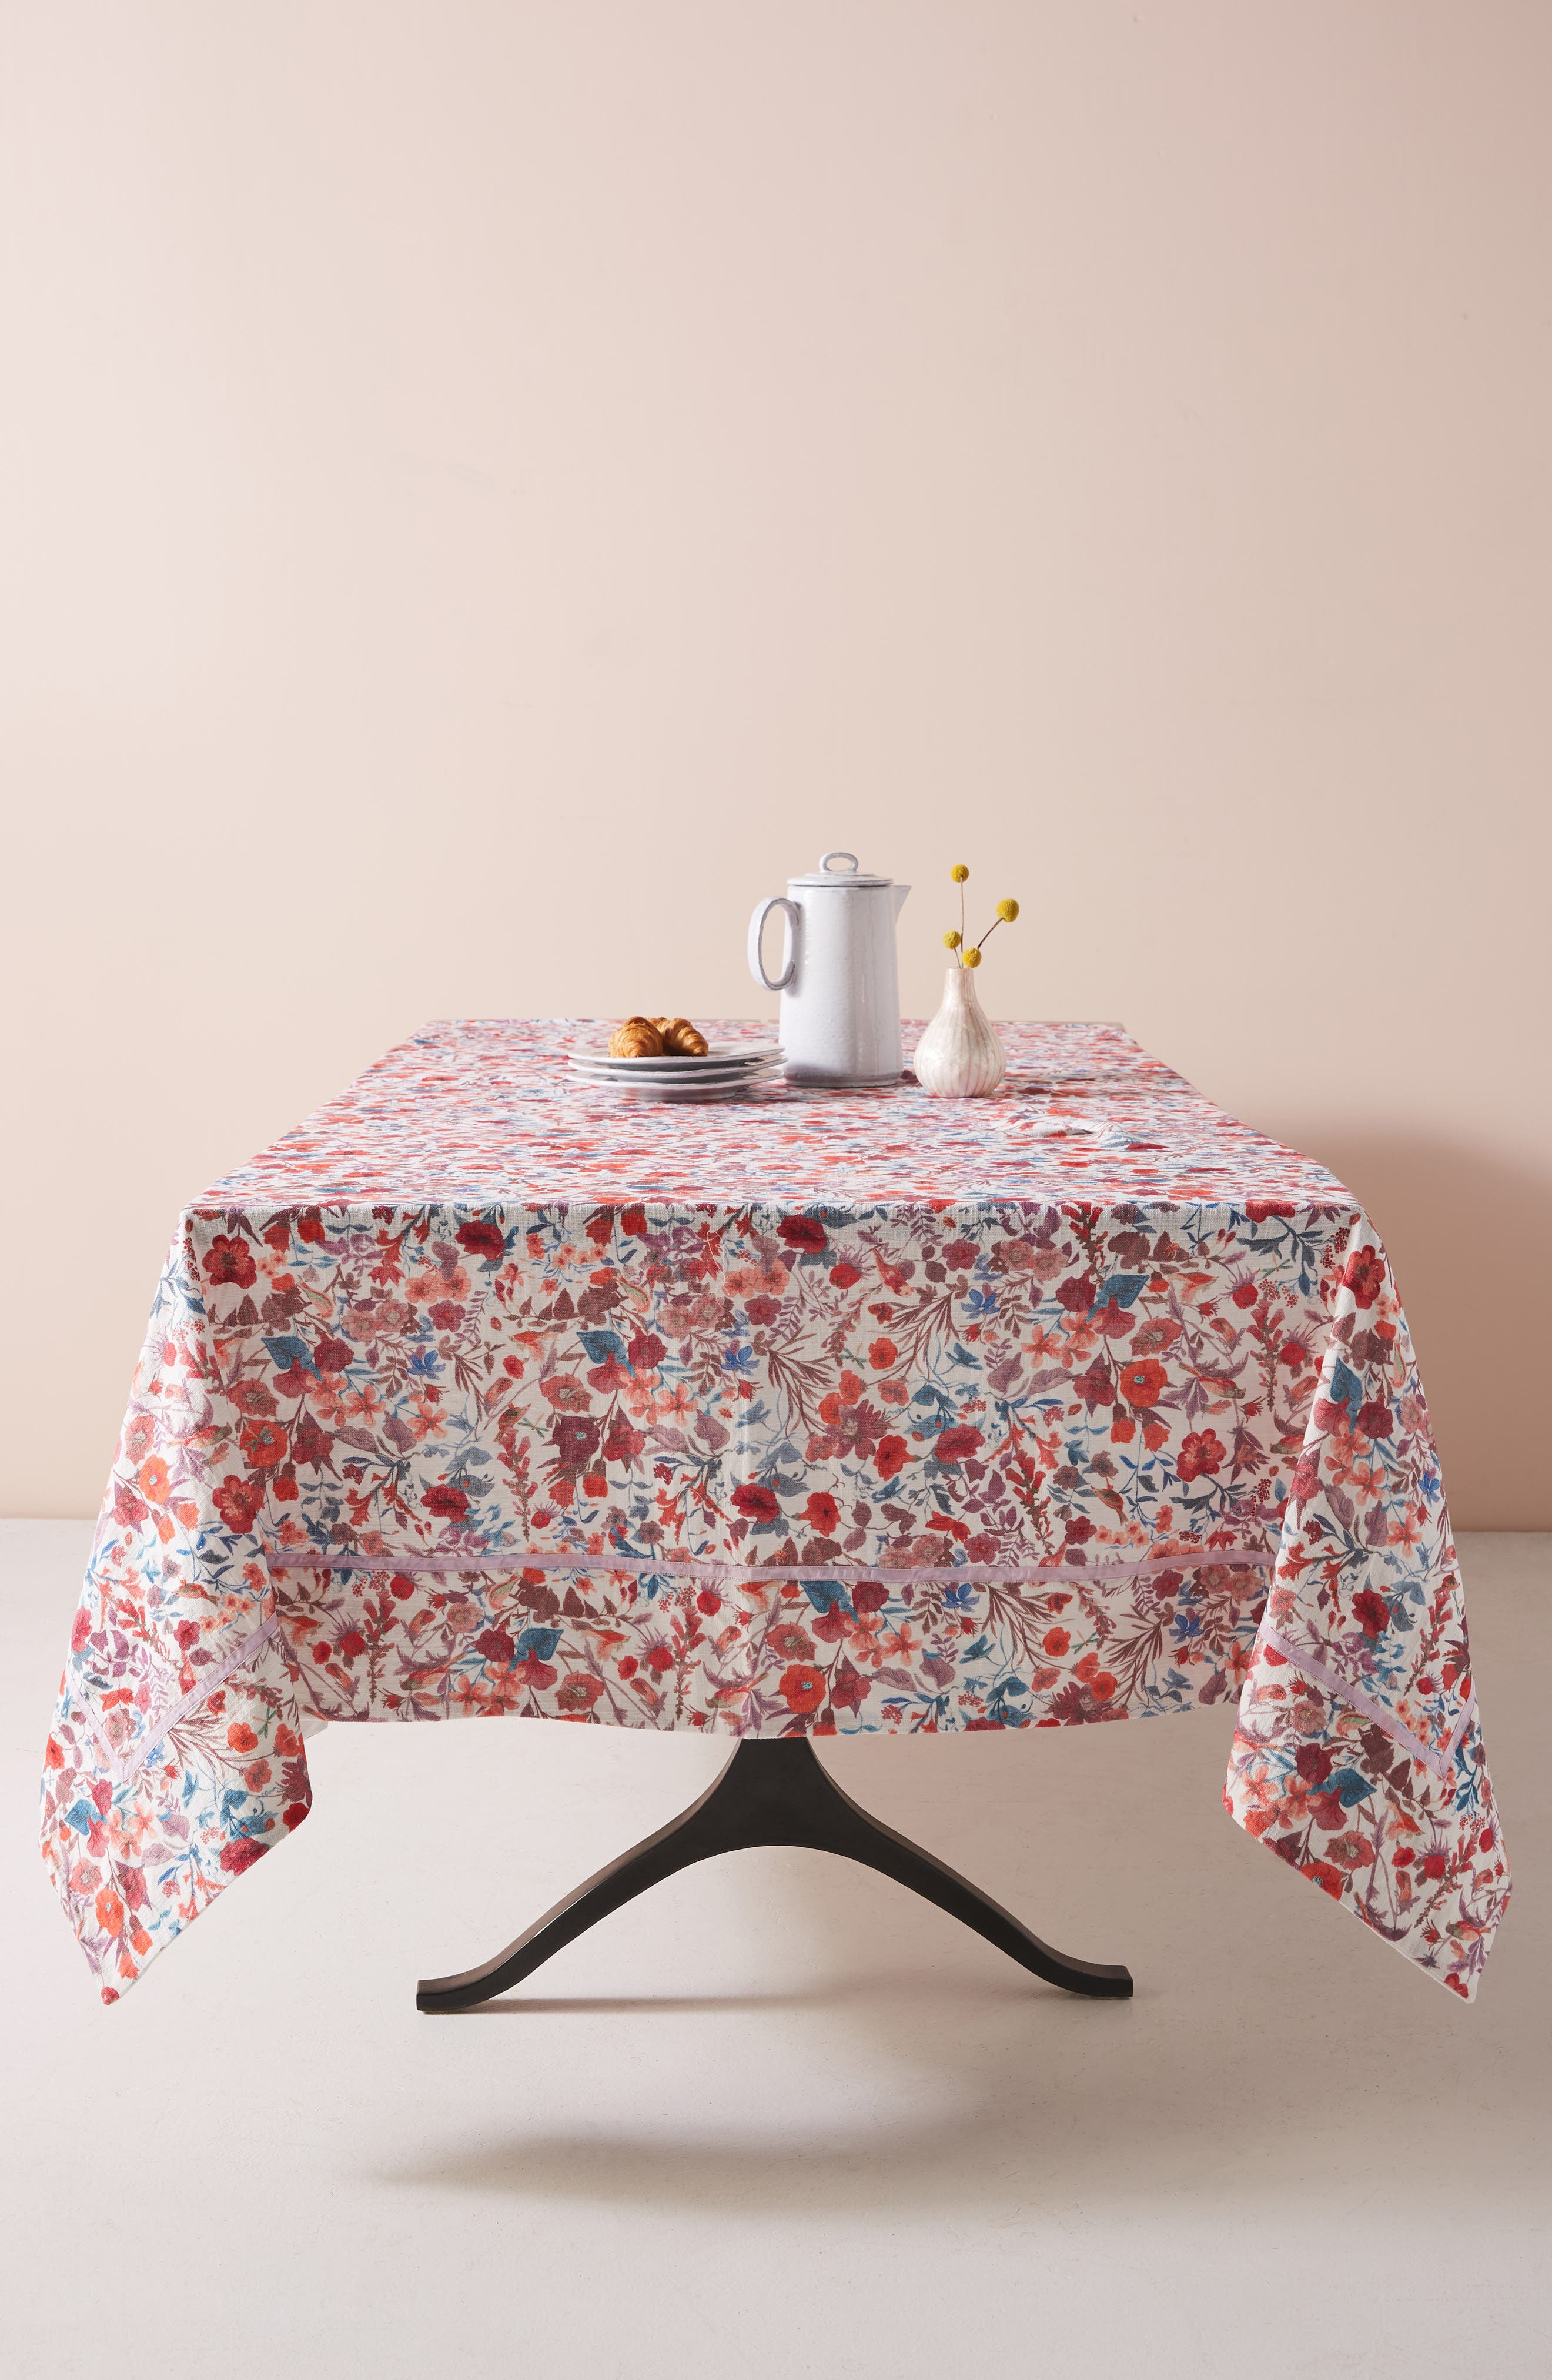 anthropologie pepina tablecloth